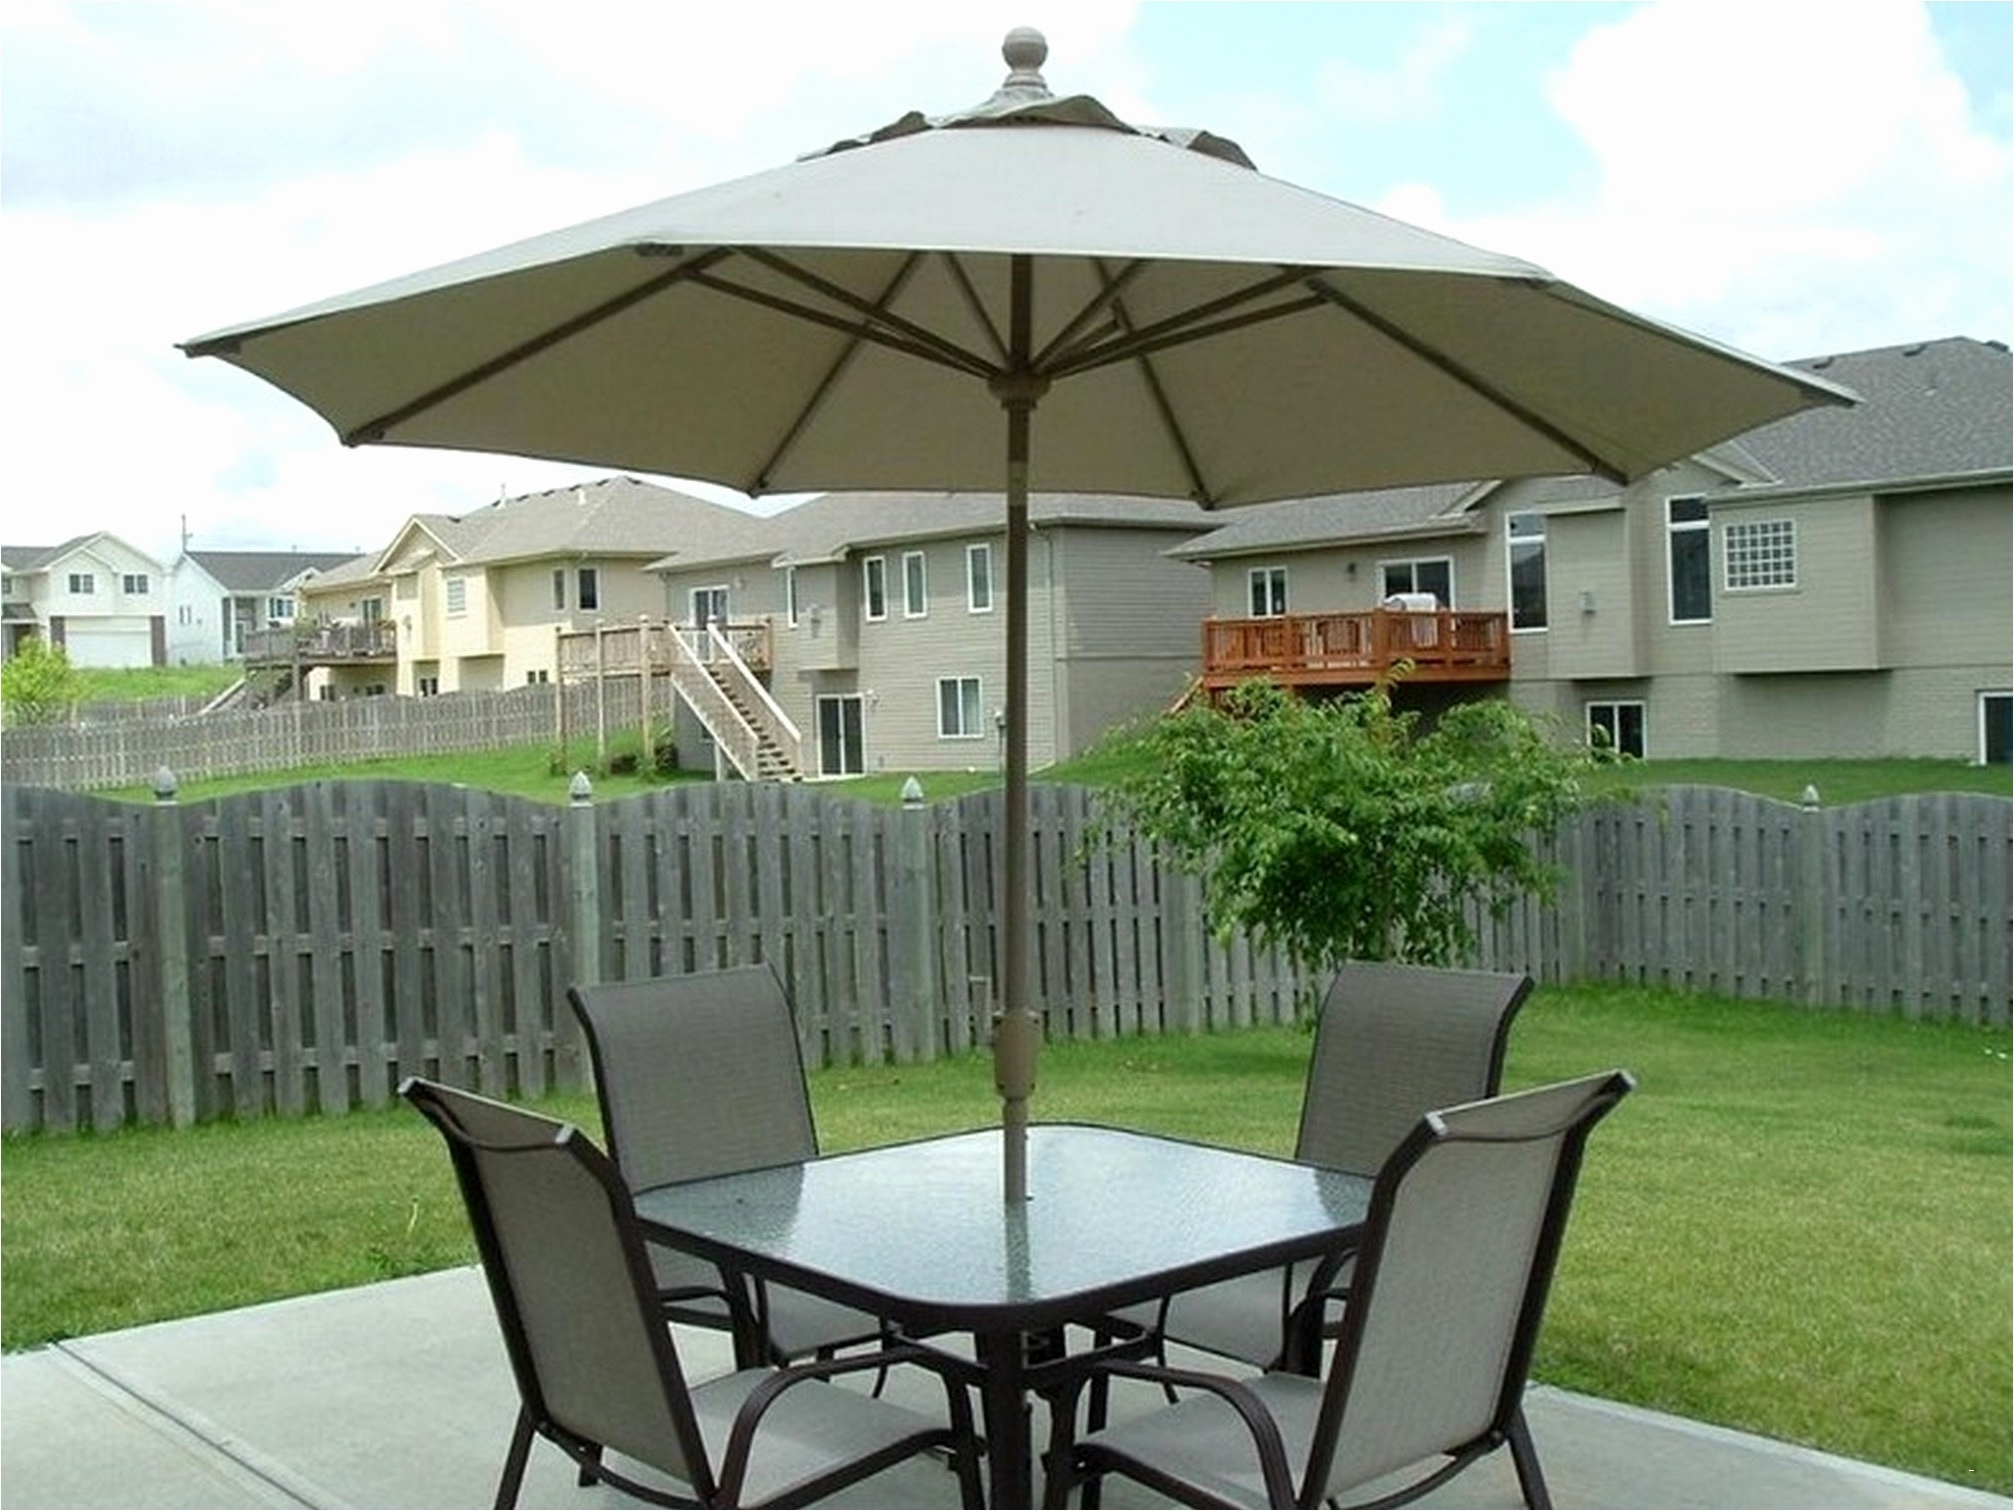 Fashionable Small Patio Tables With Umbrellas Hole With Patio Tables With Umbrella Hole Fresh Small Patio End Table Luxury (Gallery 3 of 20)